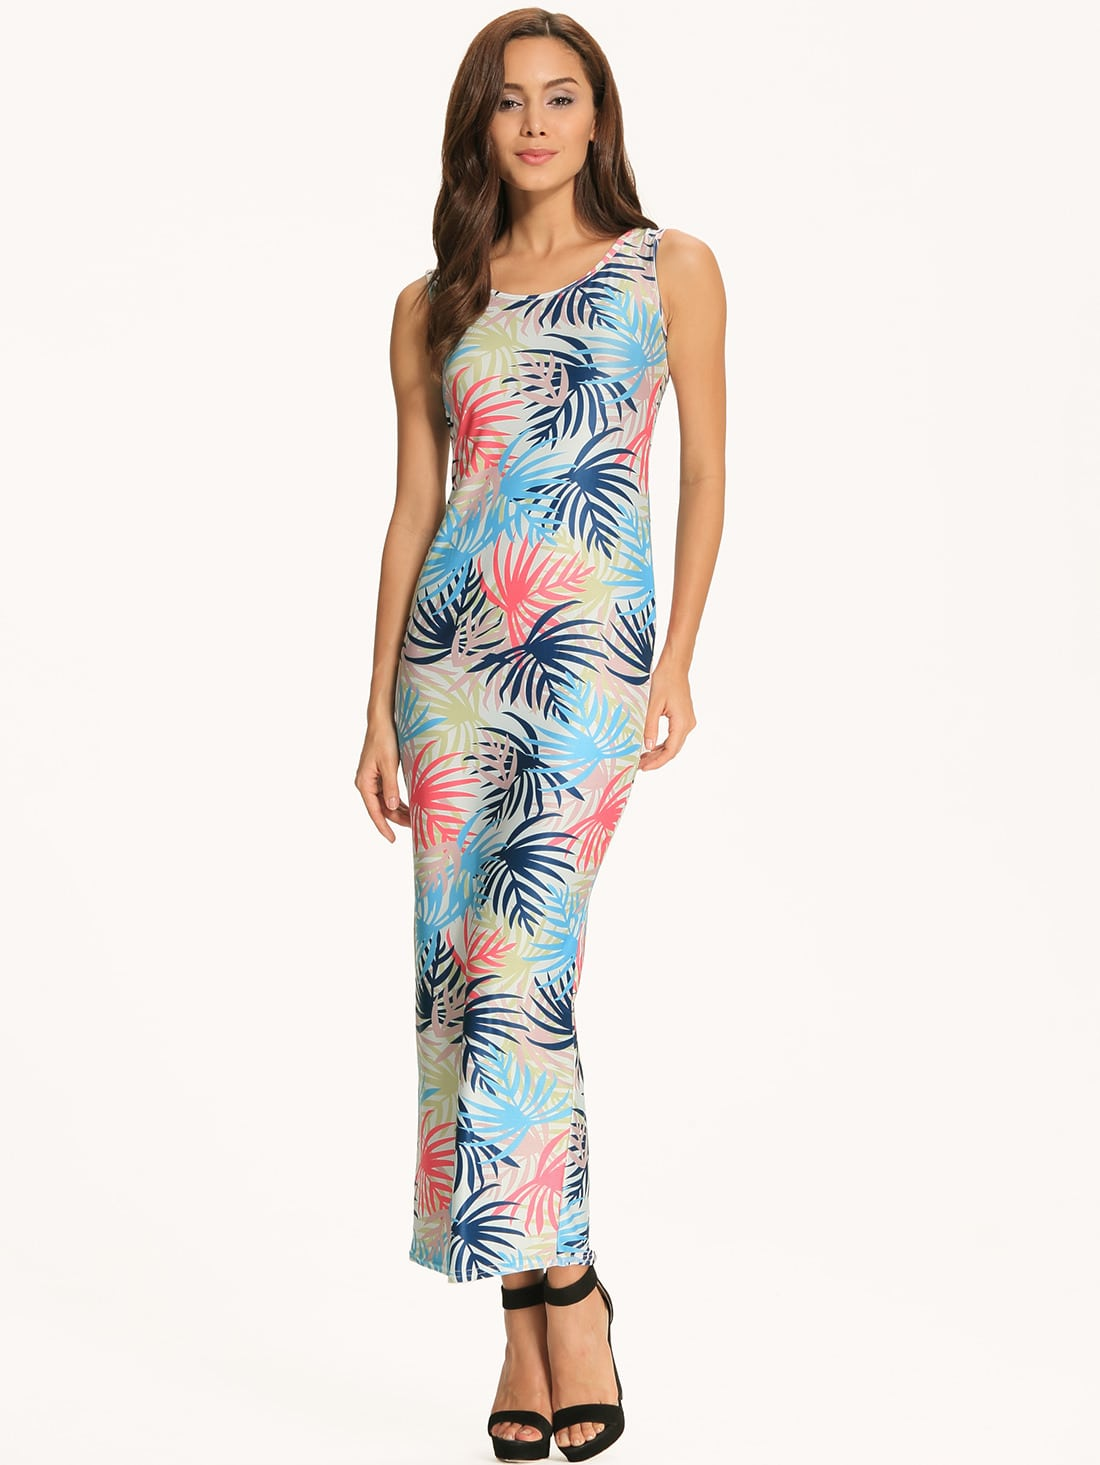 Blue Tropical Print Scoop Neck Maxi Dress - $16.86